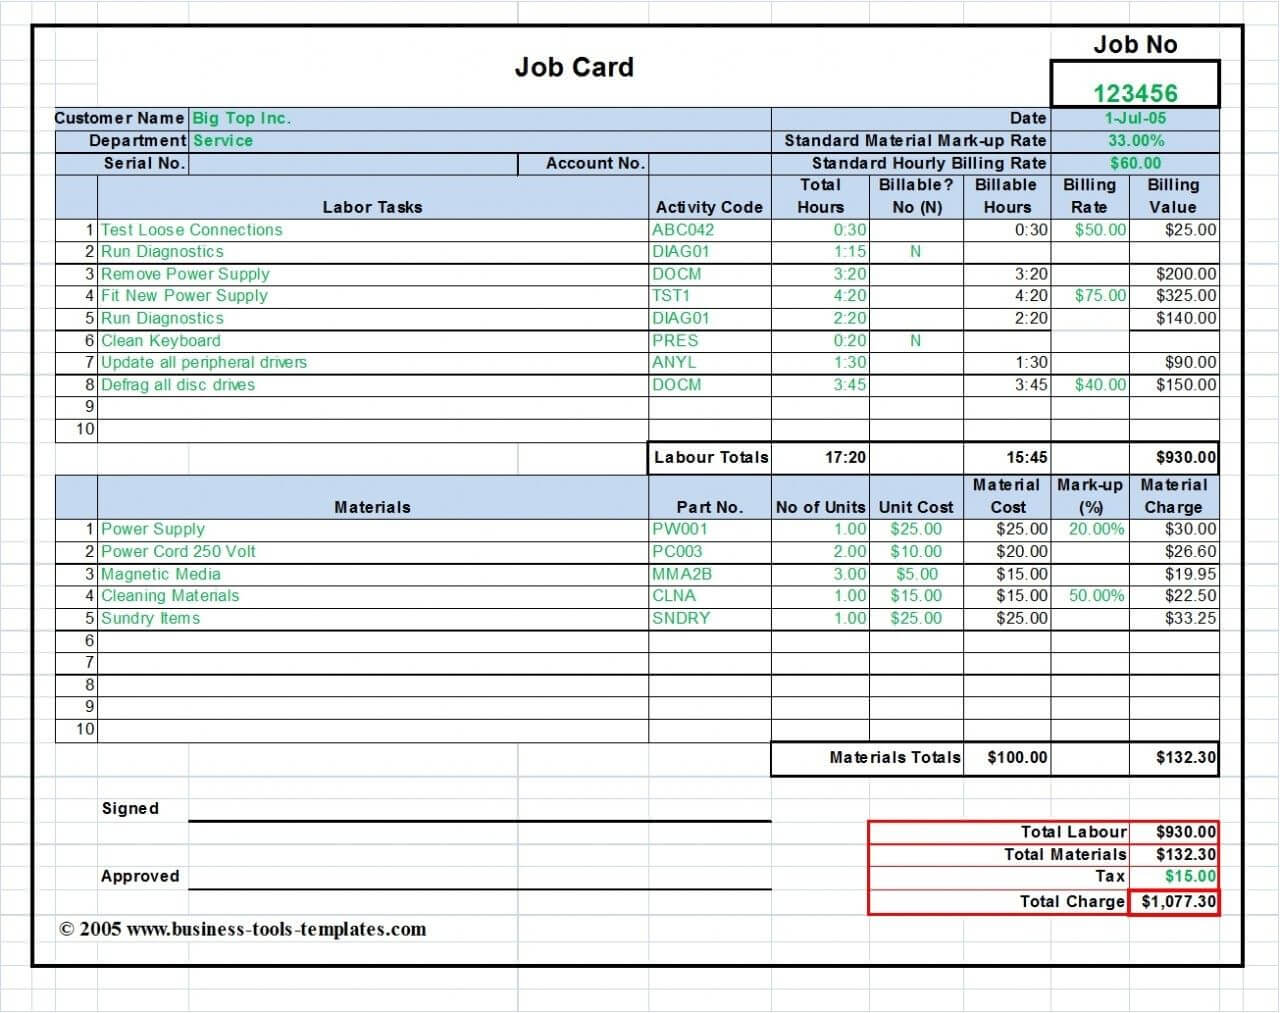 Workshop Job Card Template Excel, Labor & Material Cost Pertaining To Sample Job Cards Templates